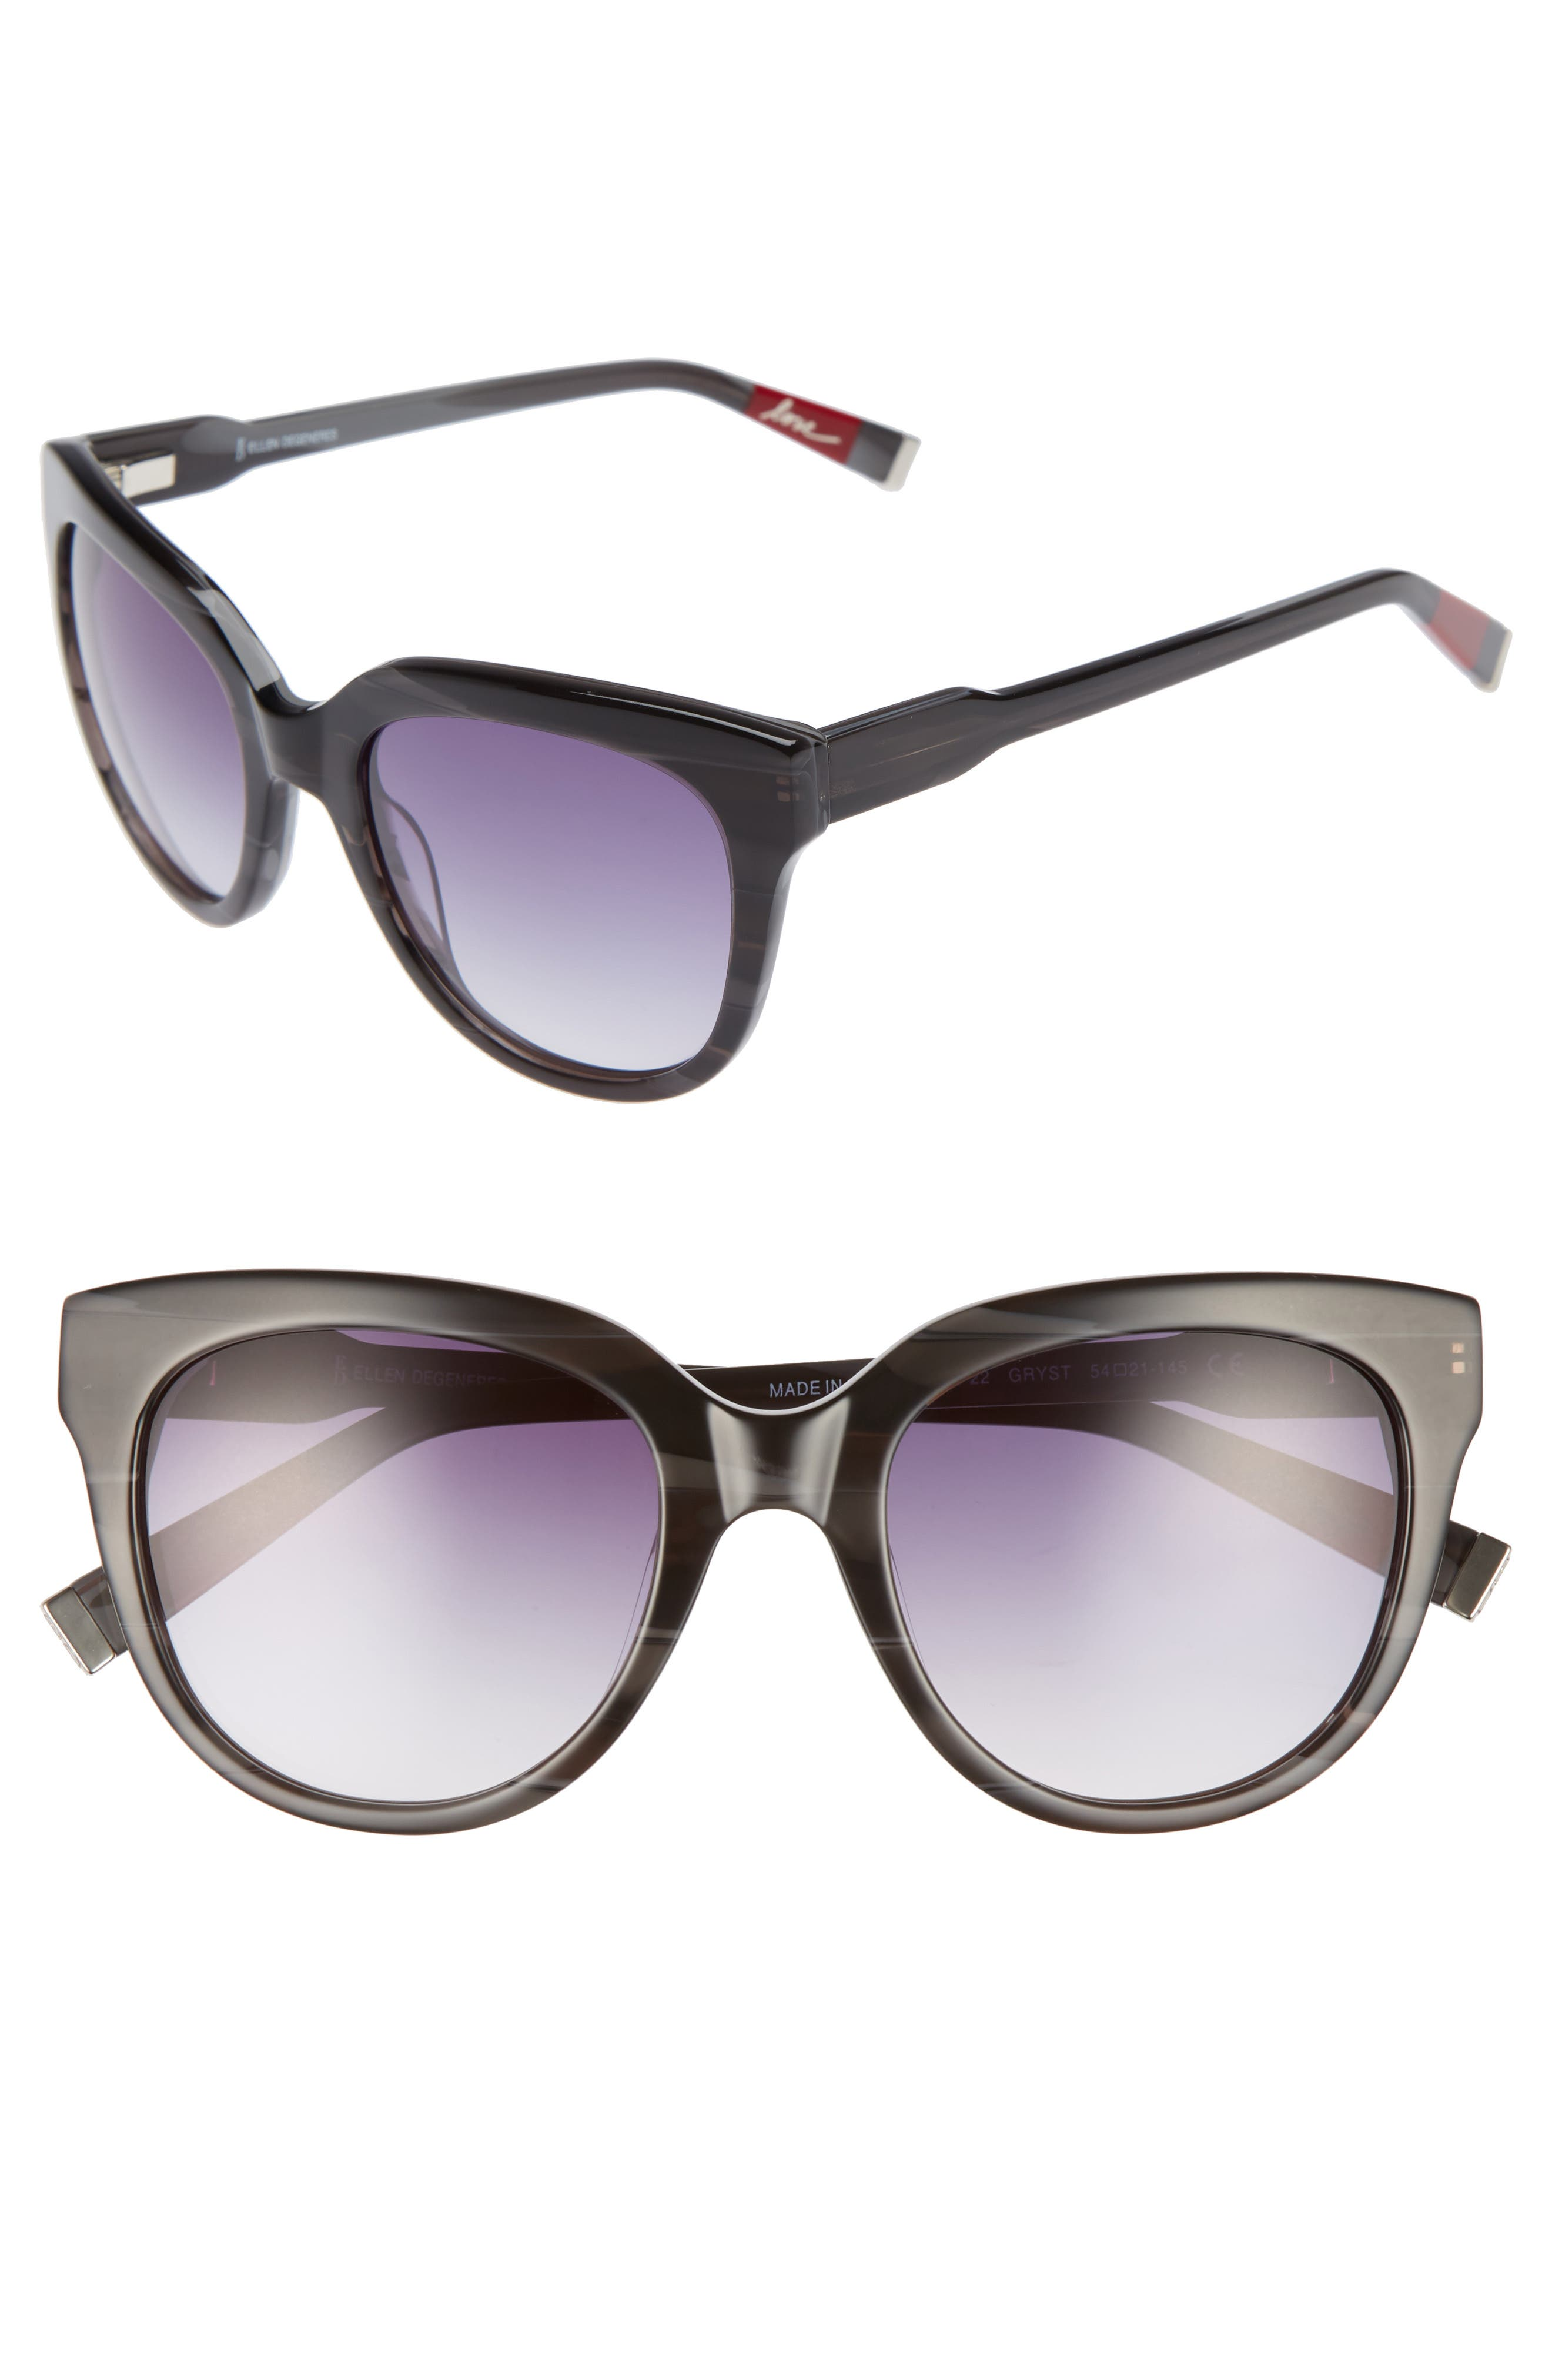 54mm Oval Sunglasses,                             Main thumbnail 1, color,                             GREY STRIPE